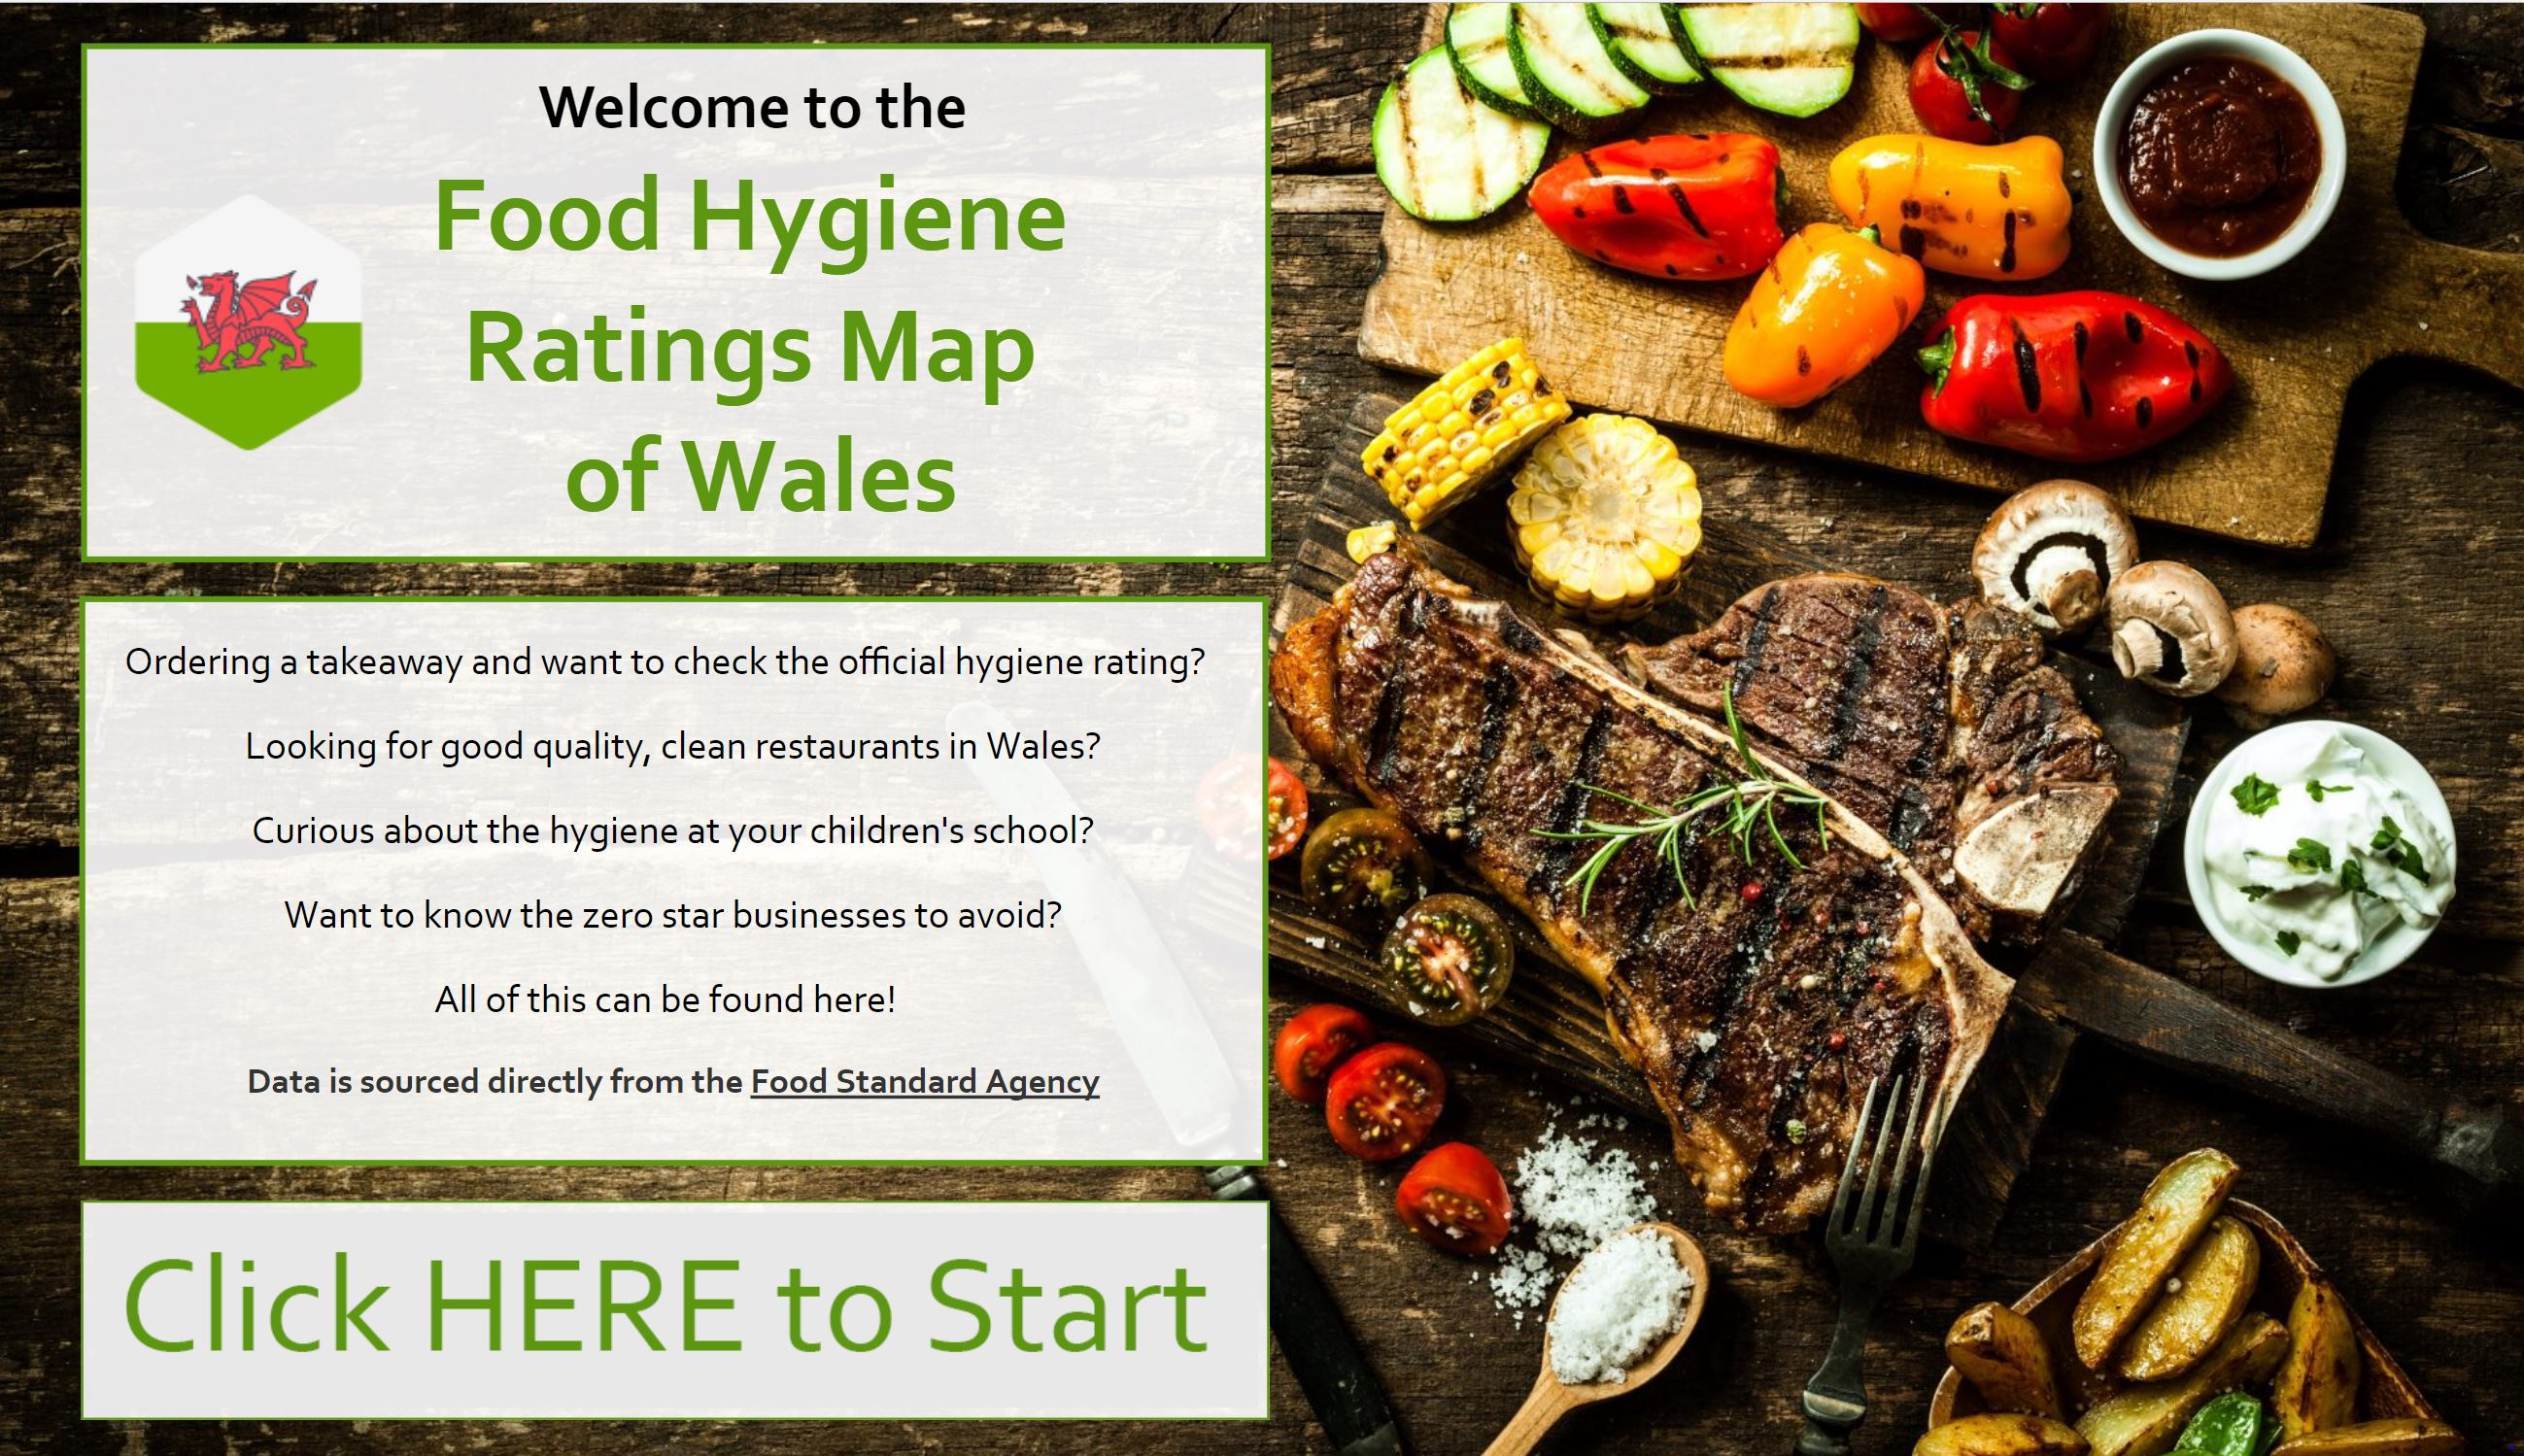 Food Hygiene Ratings Map of Wales - Takeaways, Bars, Restaurants, Schools & More!